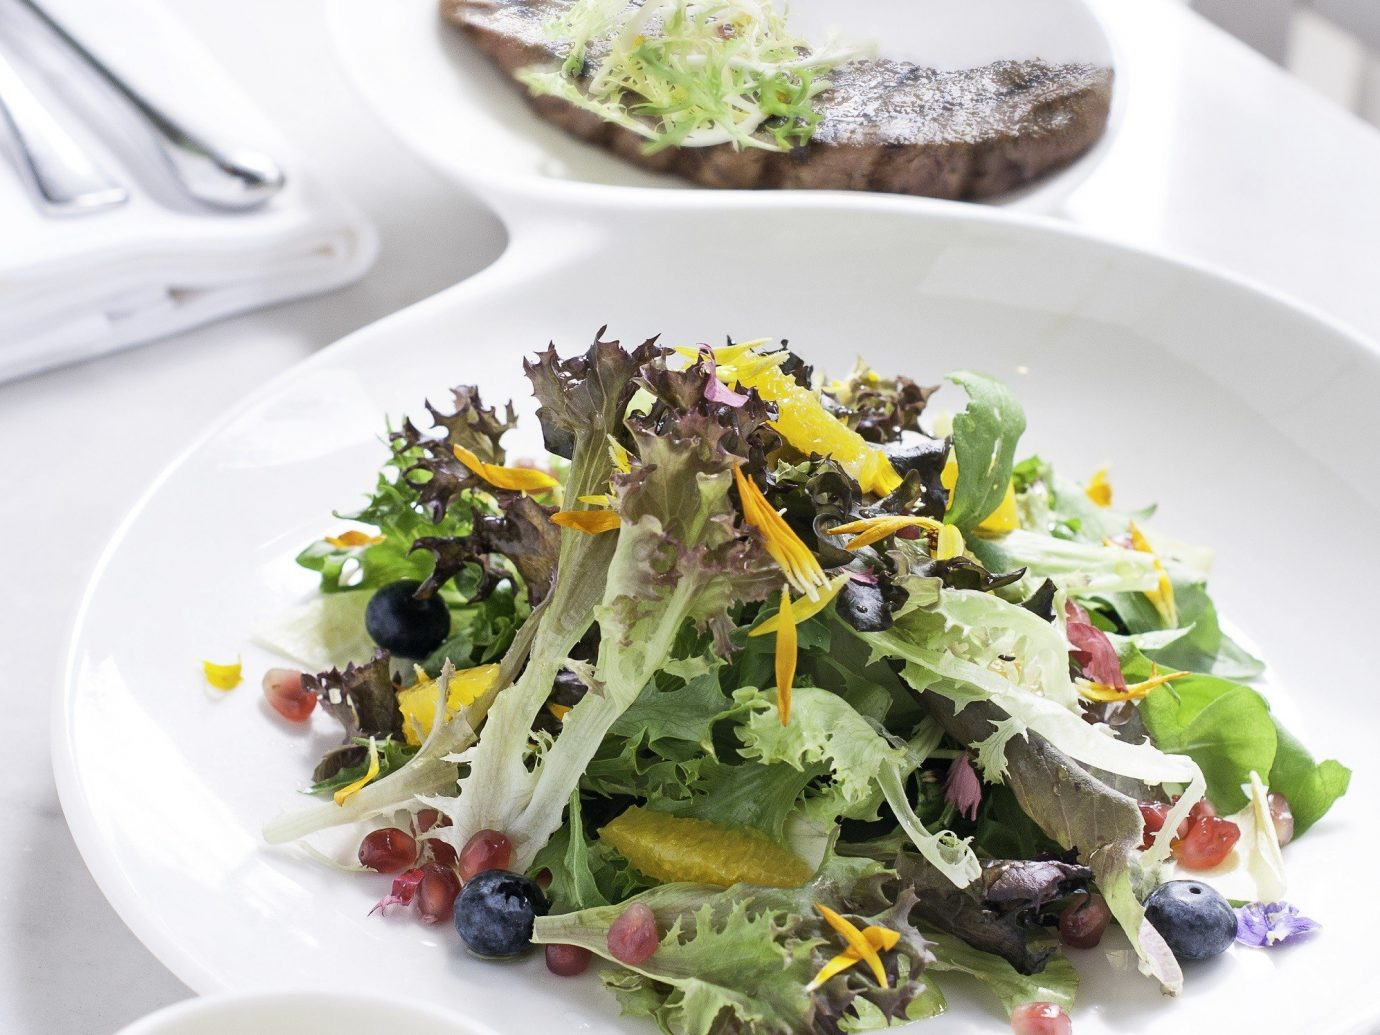 Hotels plate table food dish salad meal produce lunch cuisine vegetable breakfast